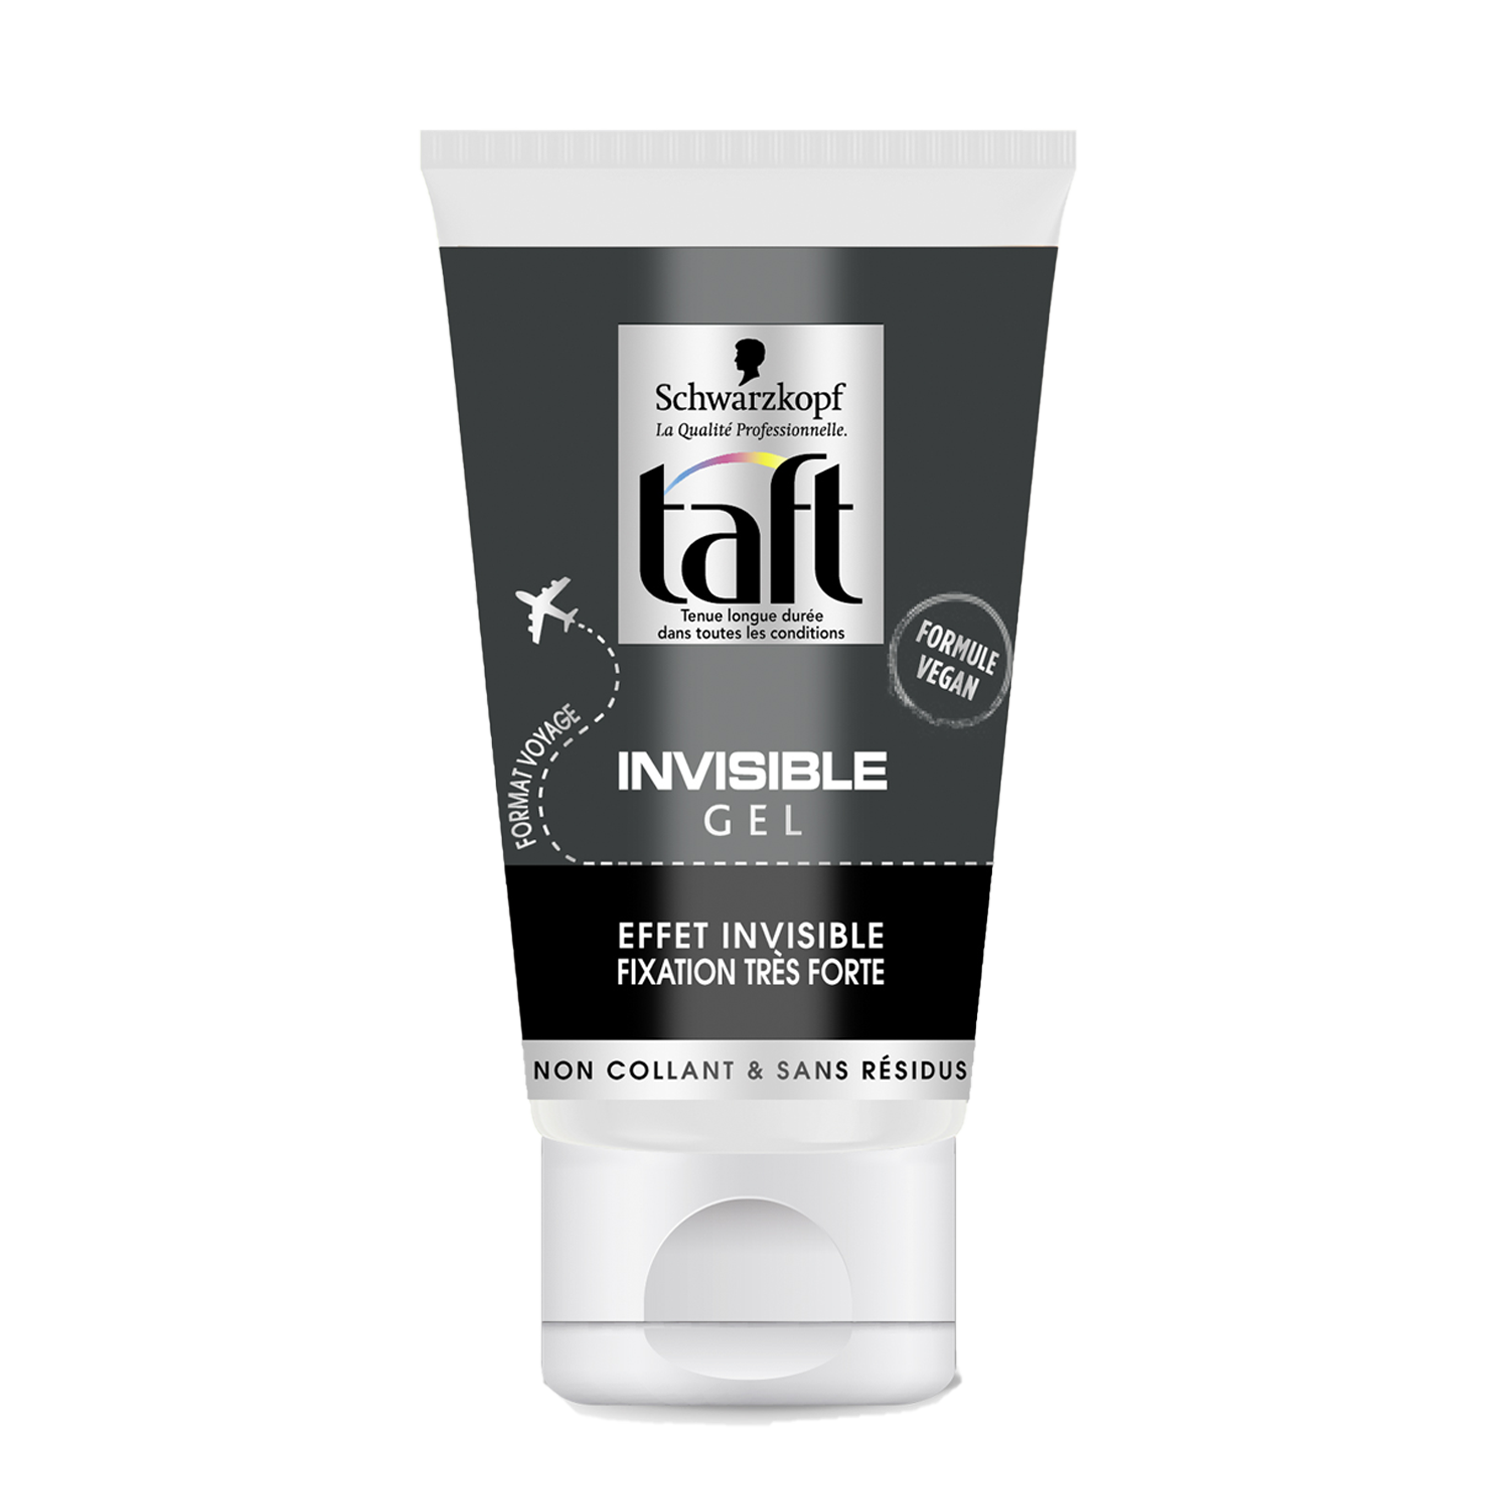 taft effet invisible gel voyage